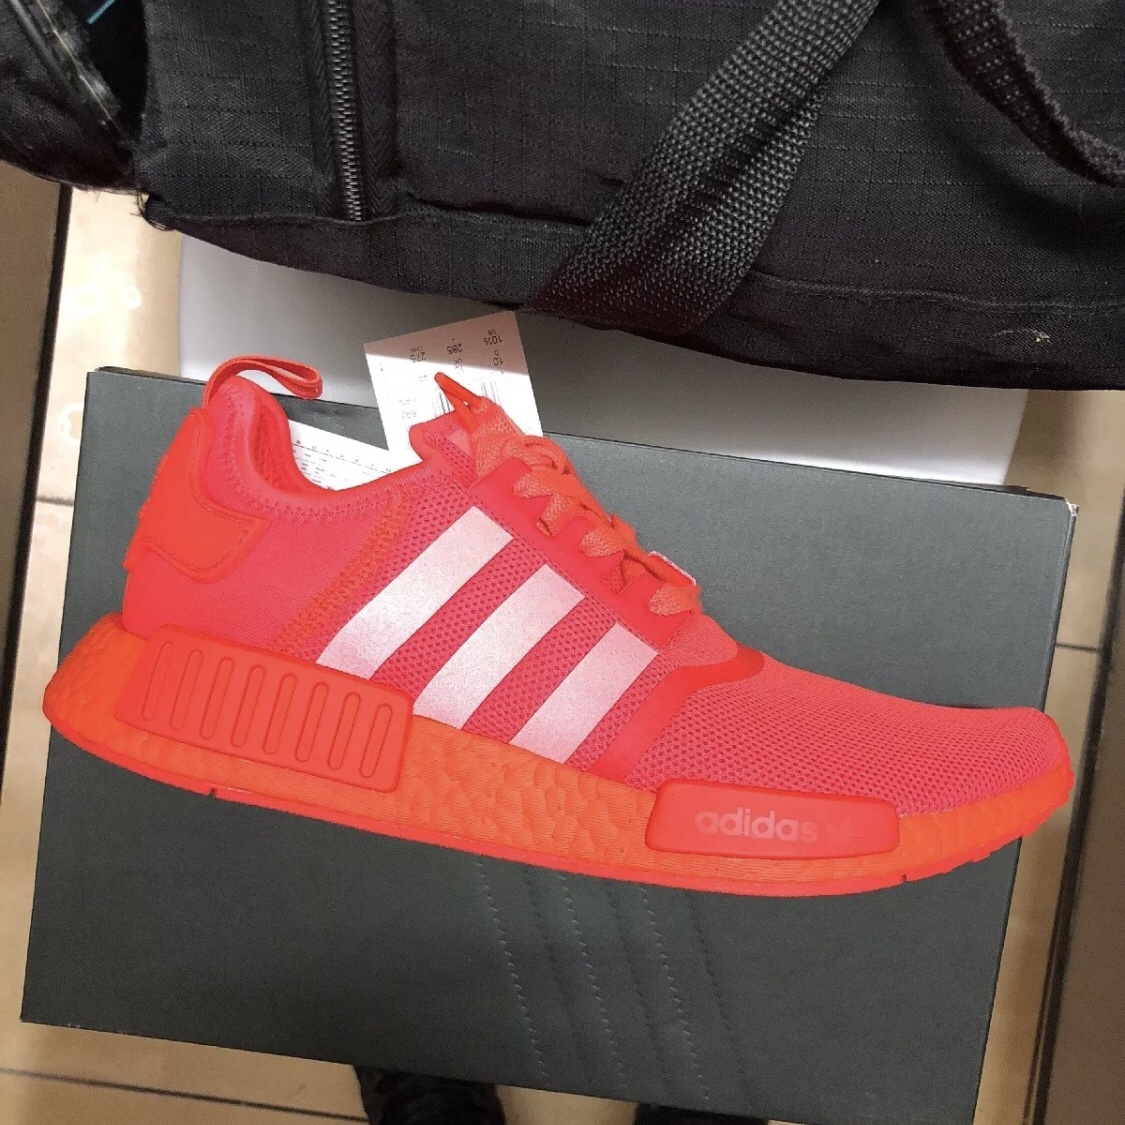 Adidas Nmd R1 Solar Red Uk 10 Brand New In Box With Depop